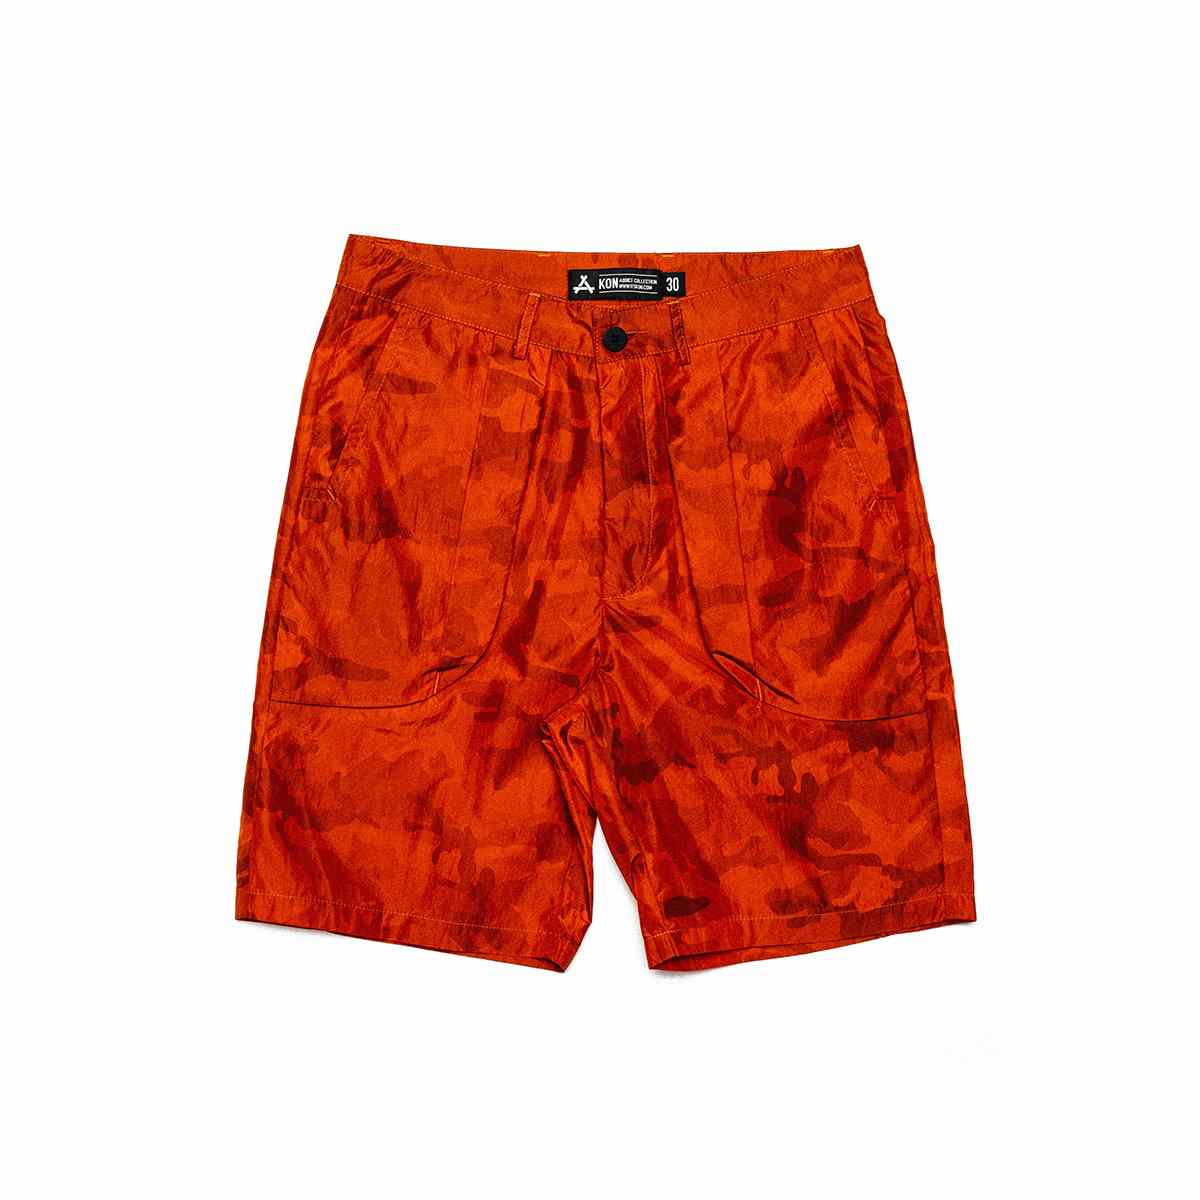 Casual camouflage Shorts Youth personality fashion Beach Sports Shorts 2018 new summer mens trend